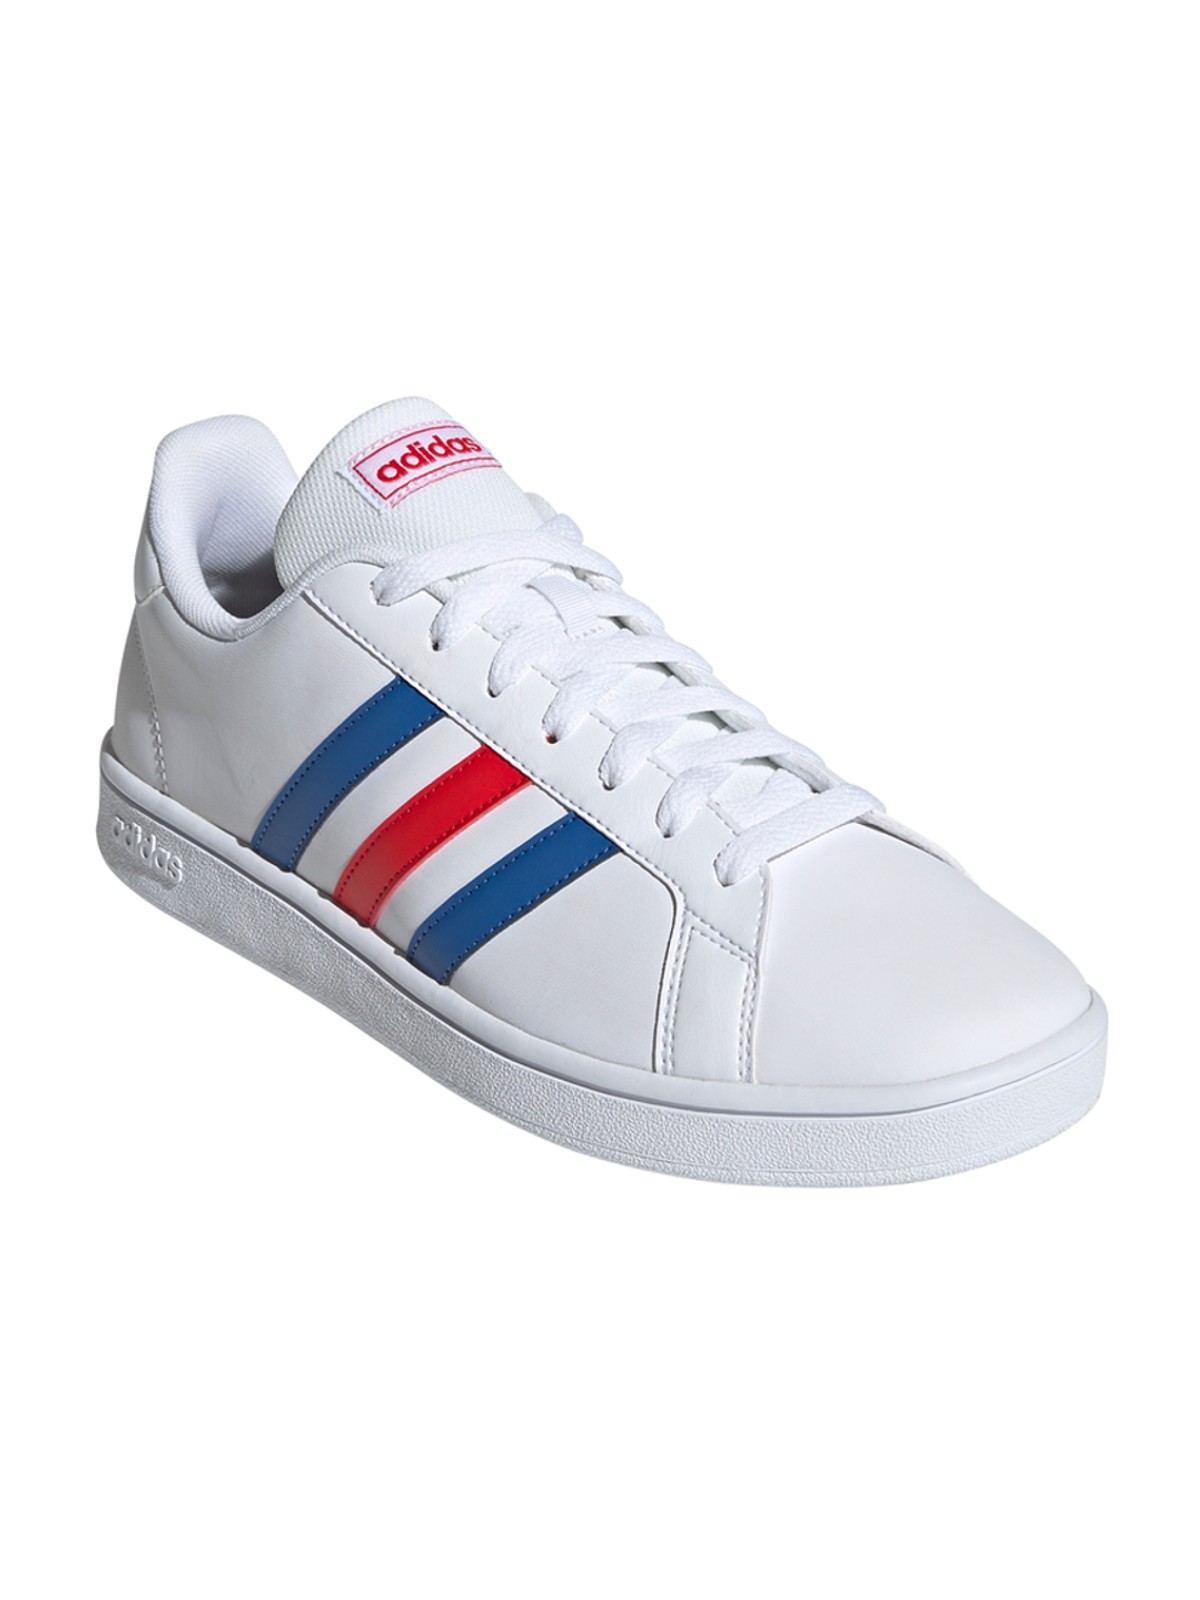 Baskets adidas homme (40 46) DistriCenter